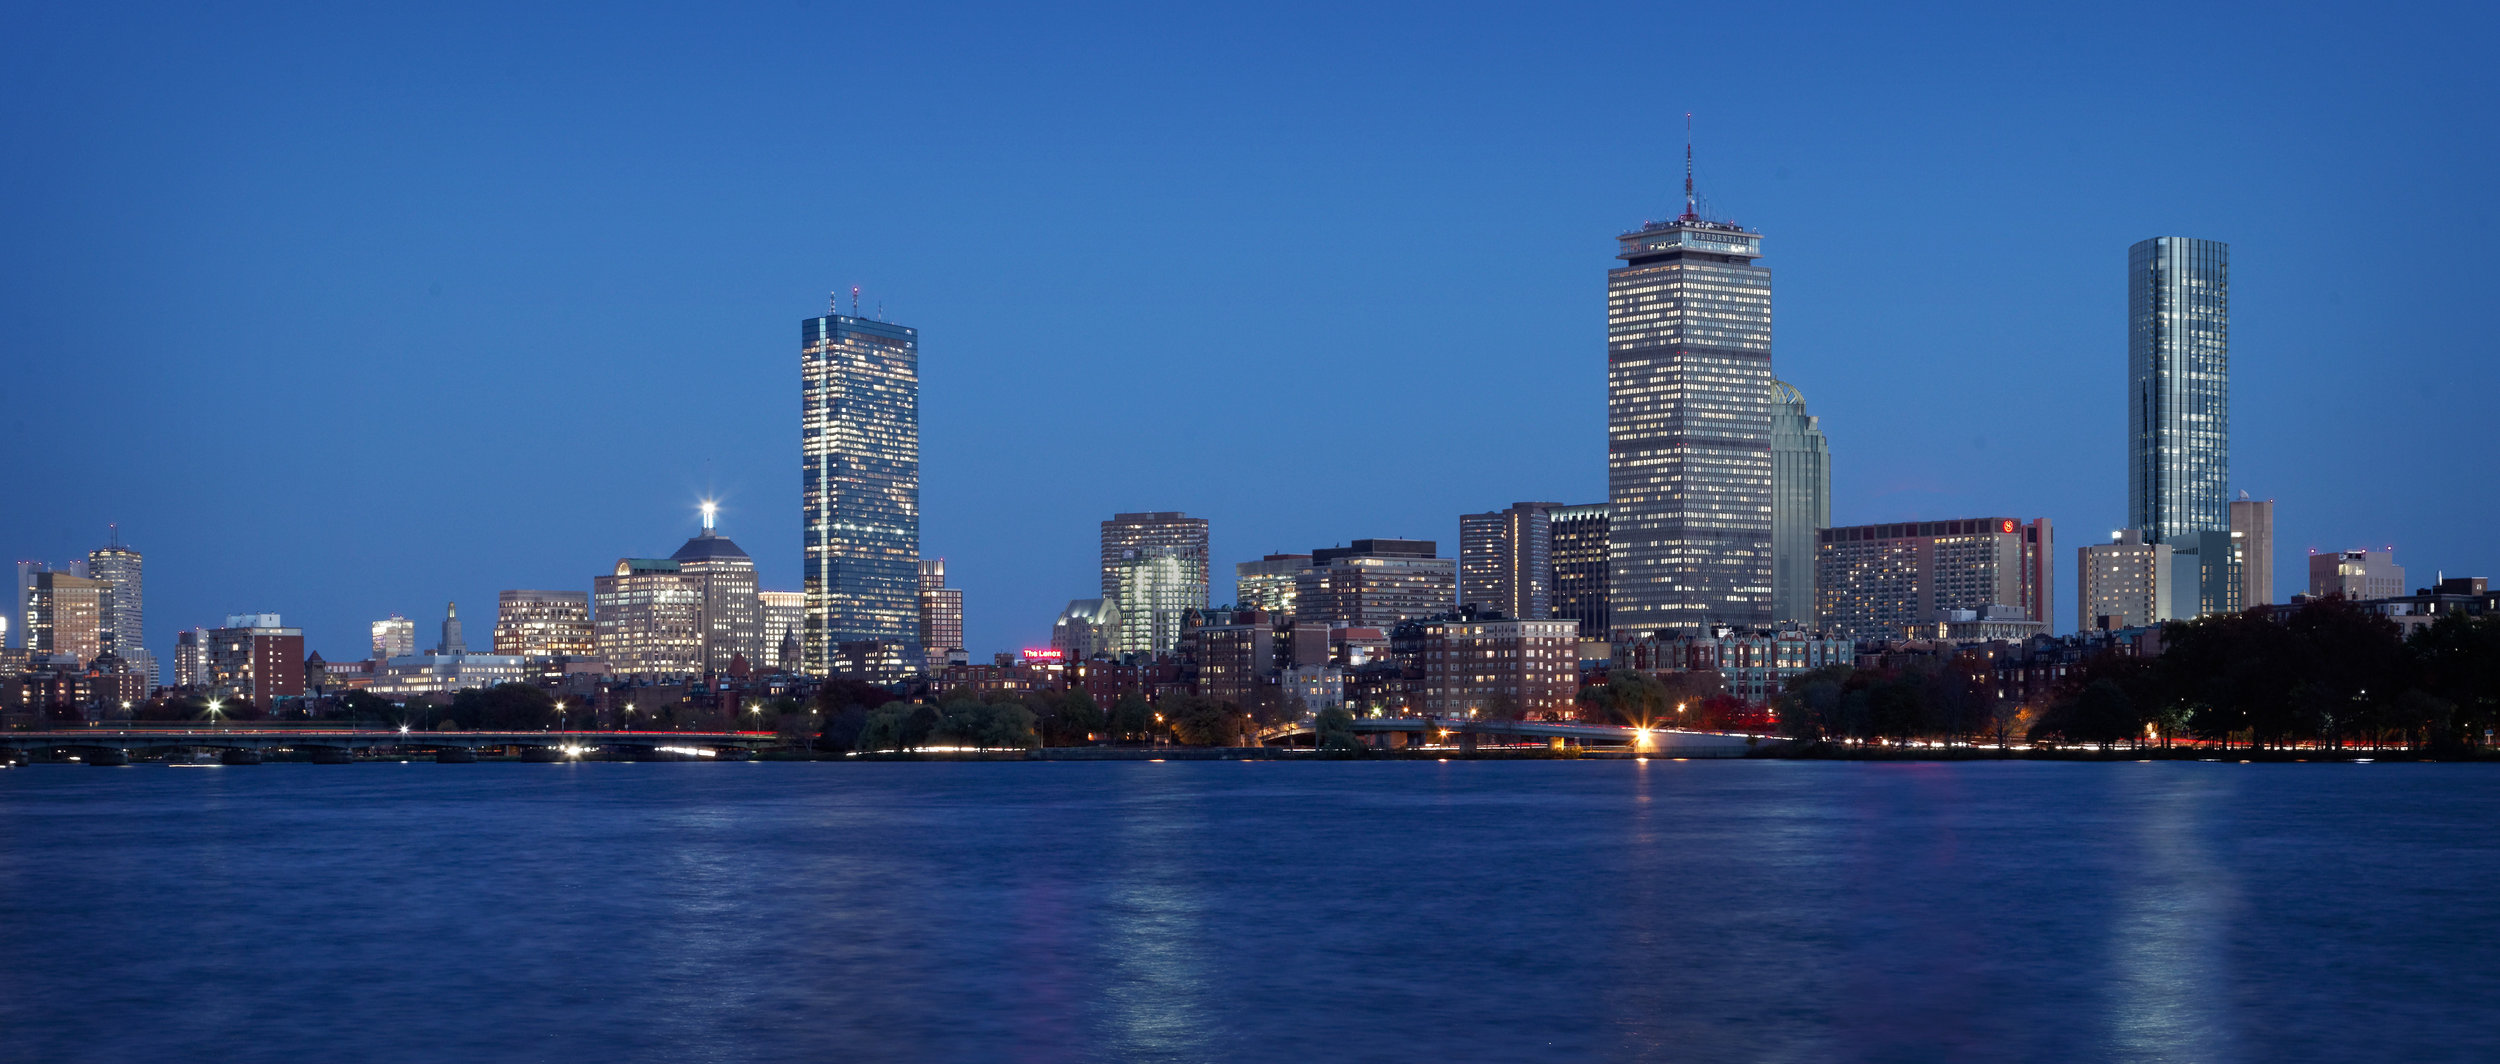 Rendering of Tower (at right) within context of Back Bay, Boston